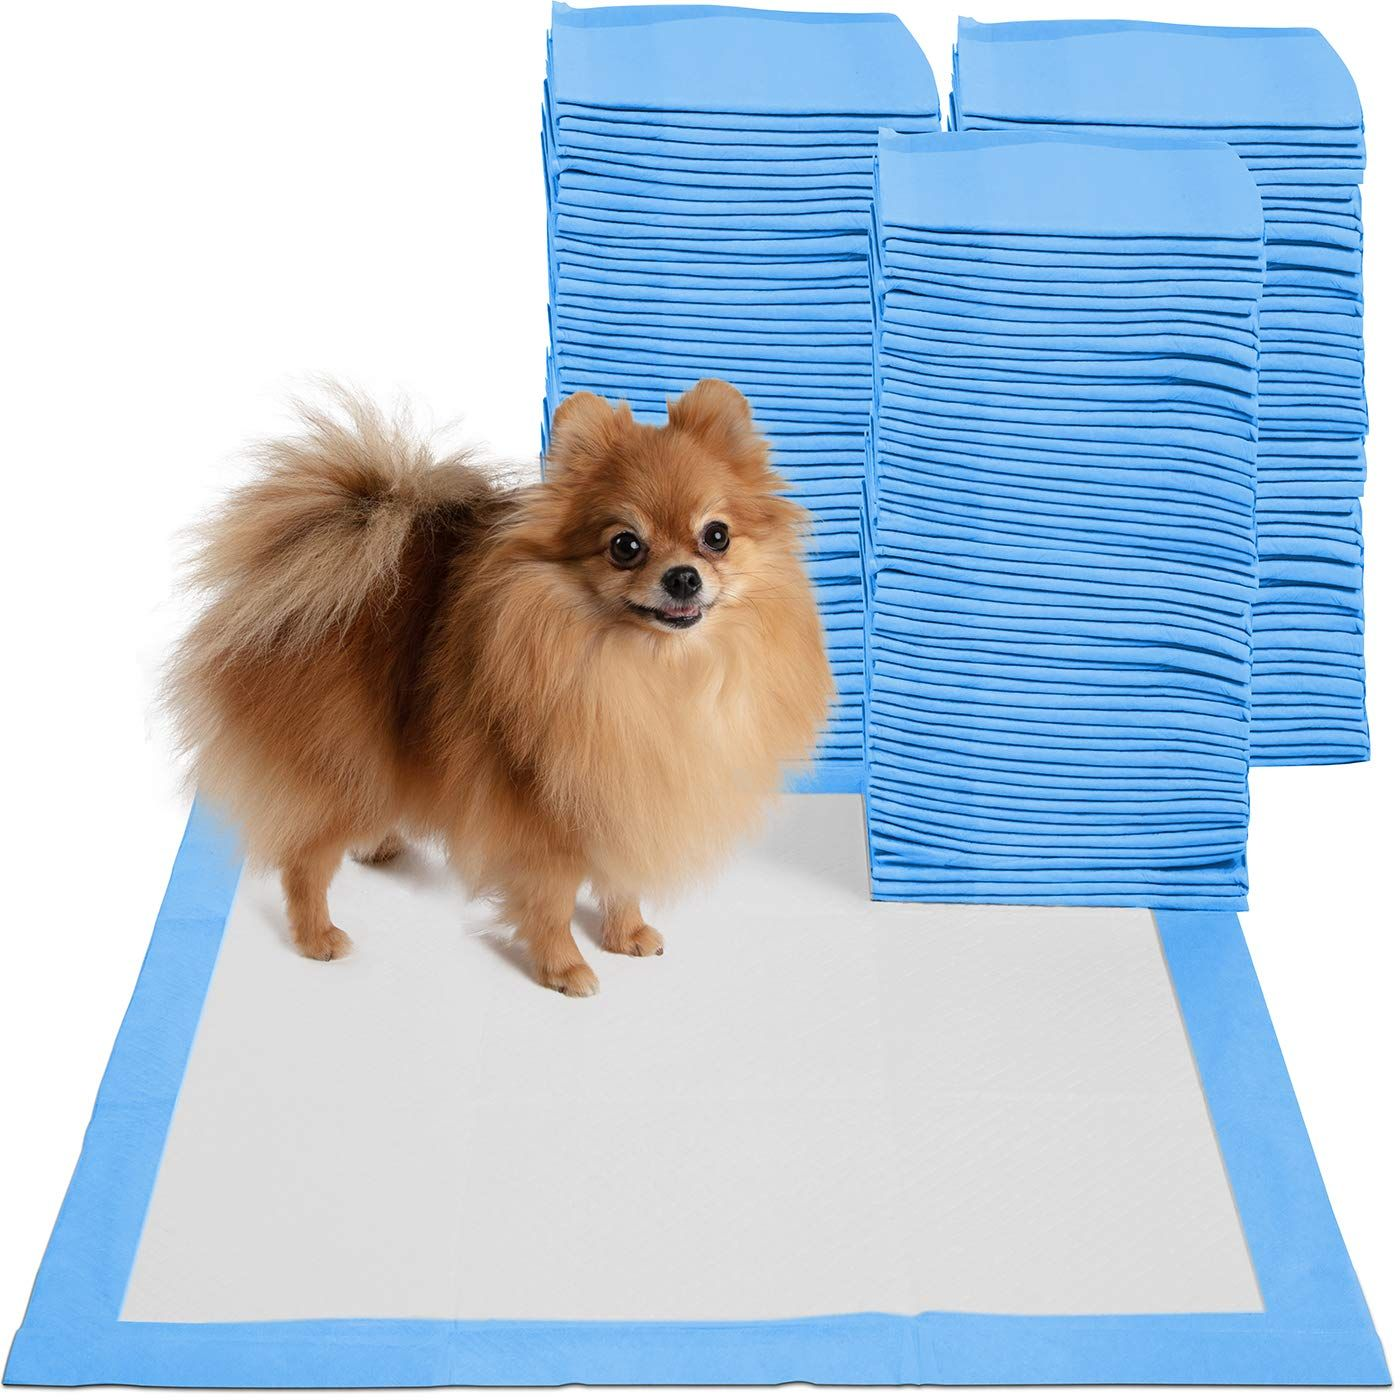 Puppy Pads Dog Pee Pad For Potty Training Dogs Pet Man Puppy